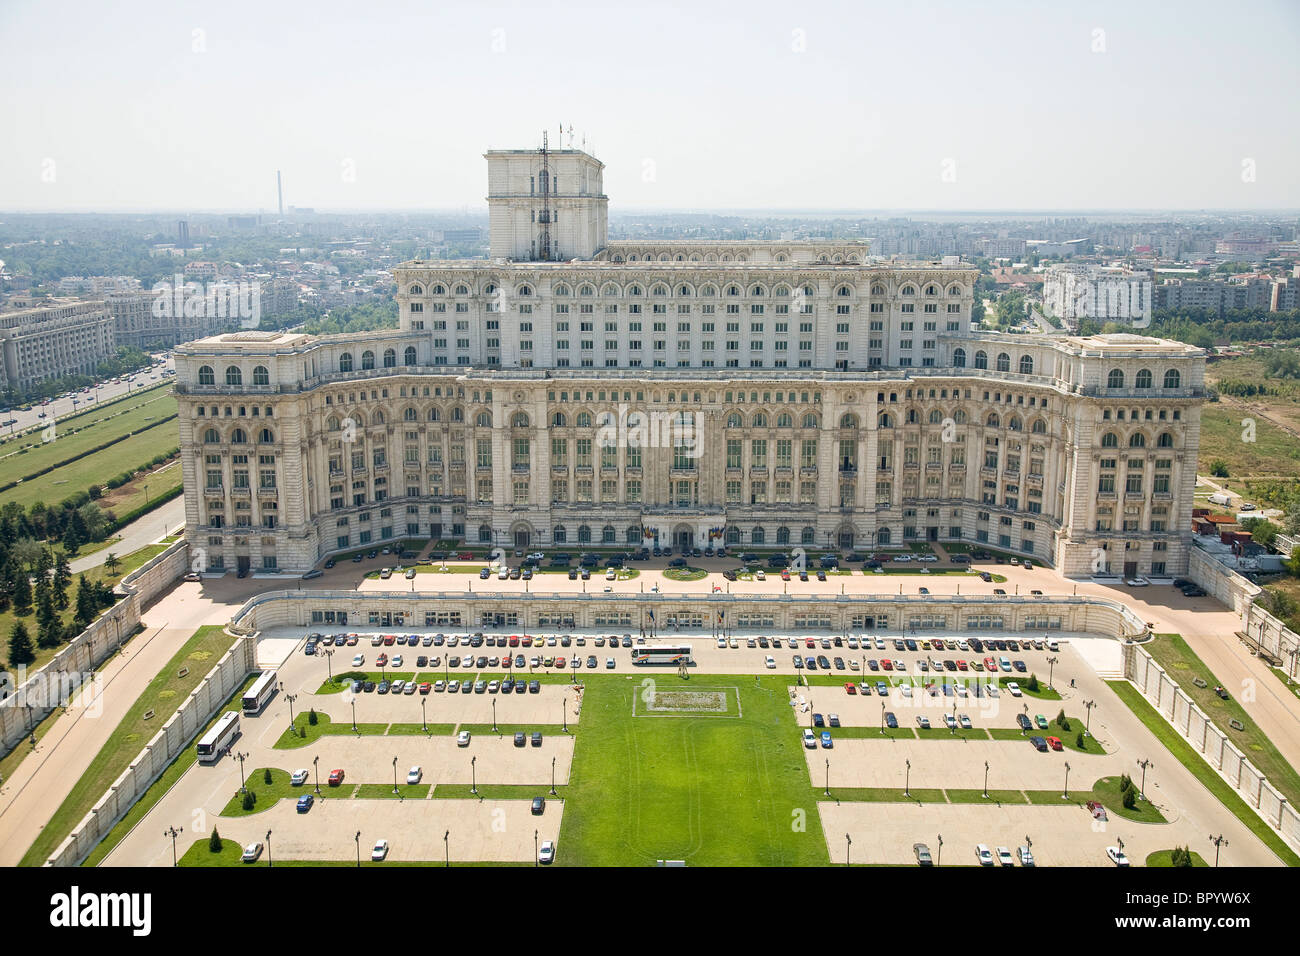 Aerial photograph of the Romanian Palace of Parliament in the city of Bucharest Stock Photo